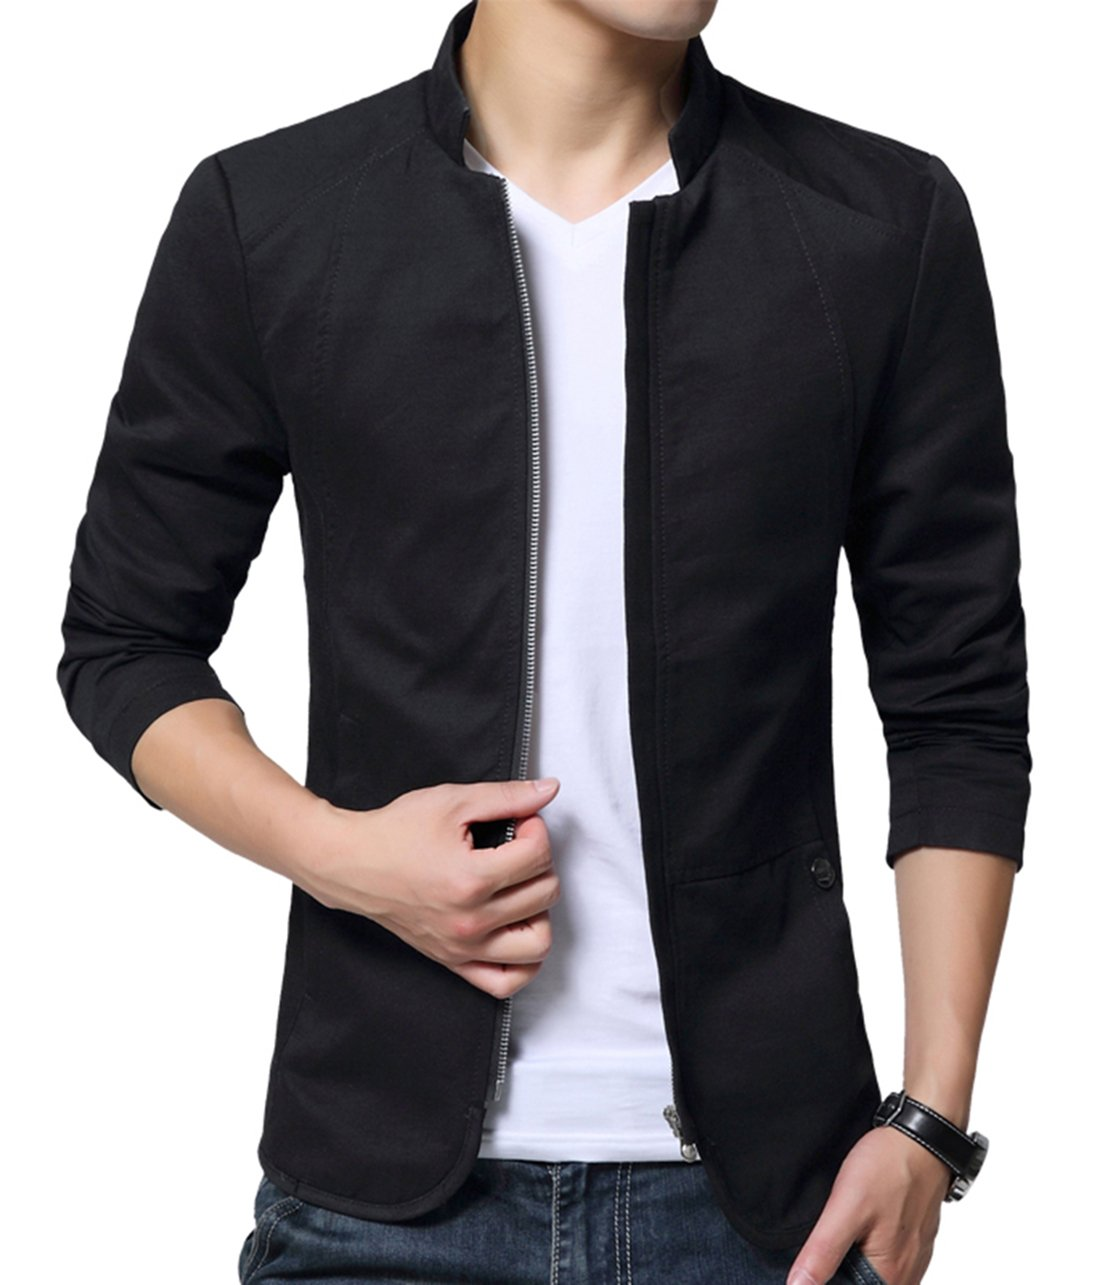 XueYin Men's Cotton Lightweight Slim Fit Jacket Casual Wear(Black,S Size) by XueYin